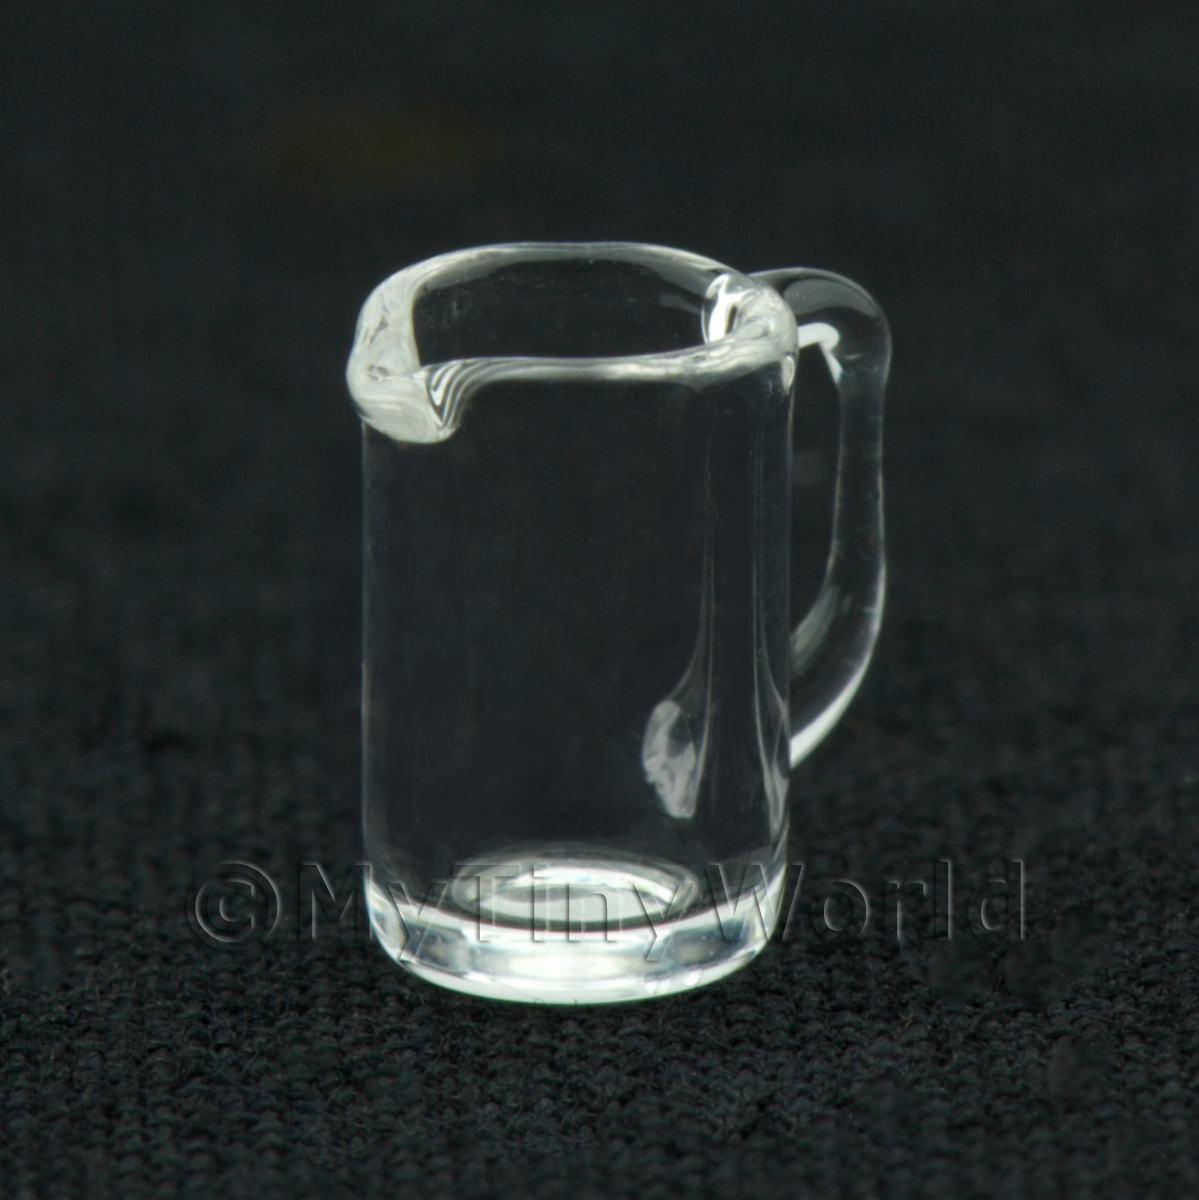 8mm Dolls House Miniature Glass Sauce Jug